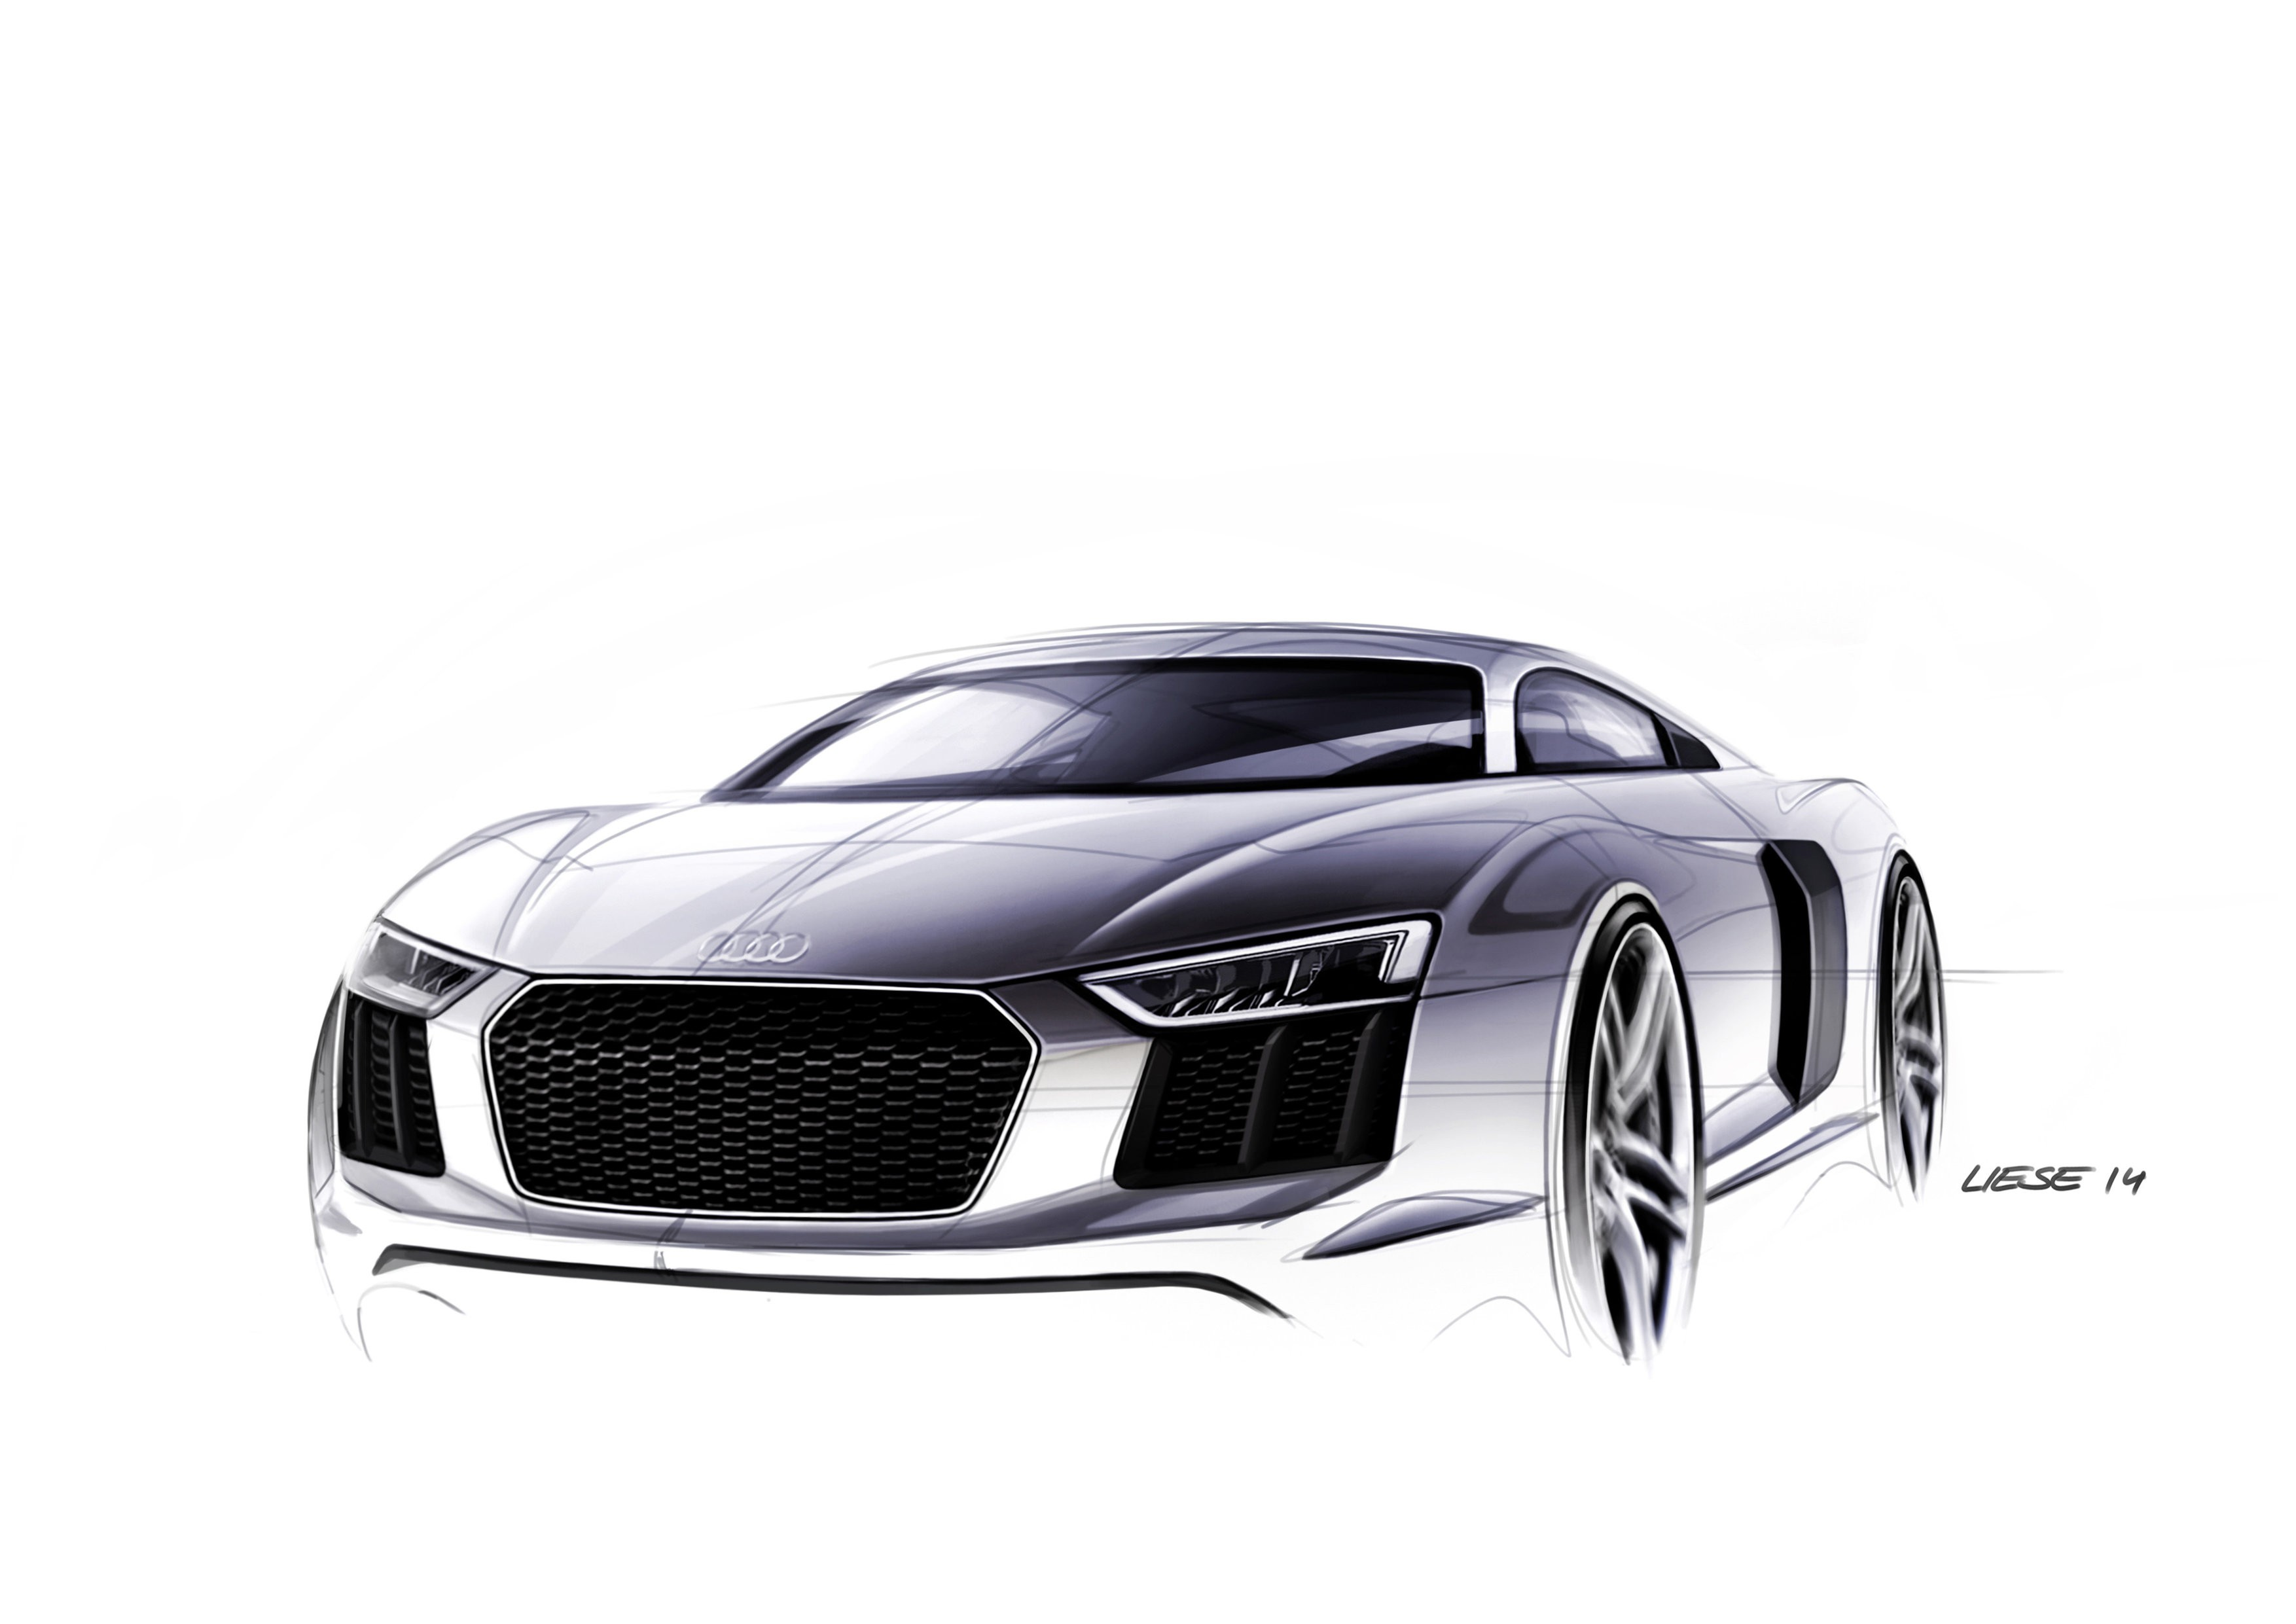 2016 Audi R8 Design Sketches Are Something to Geek Over ...